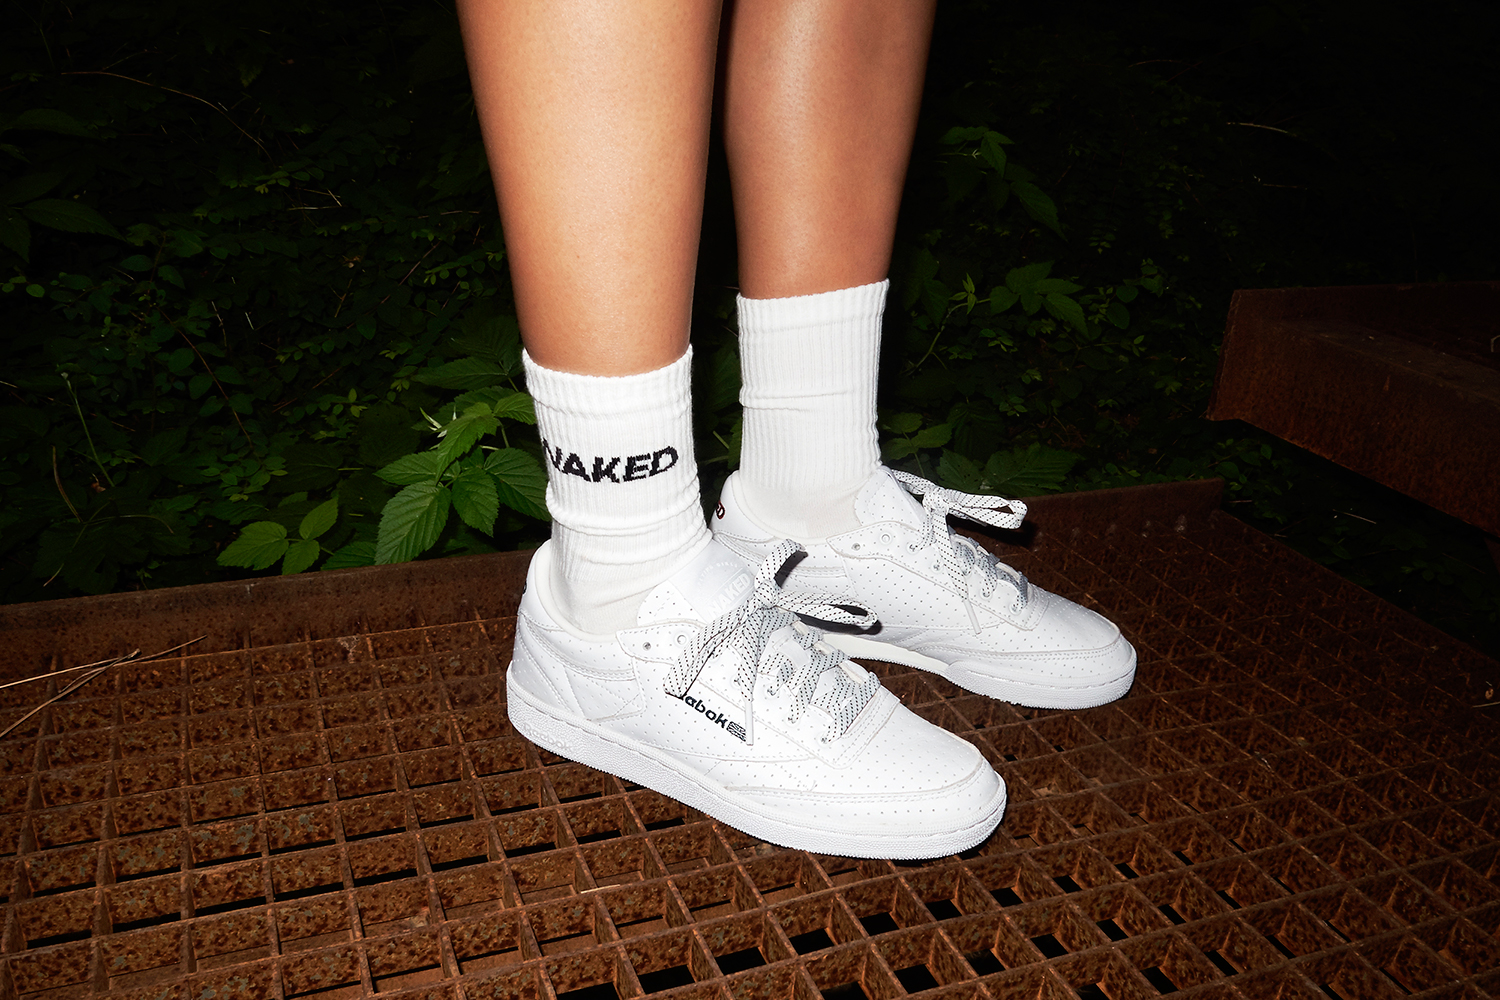 reebok-naked-90s-collaboration-03